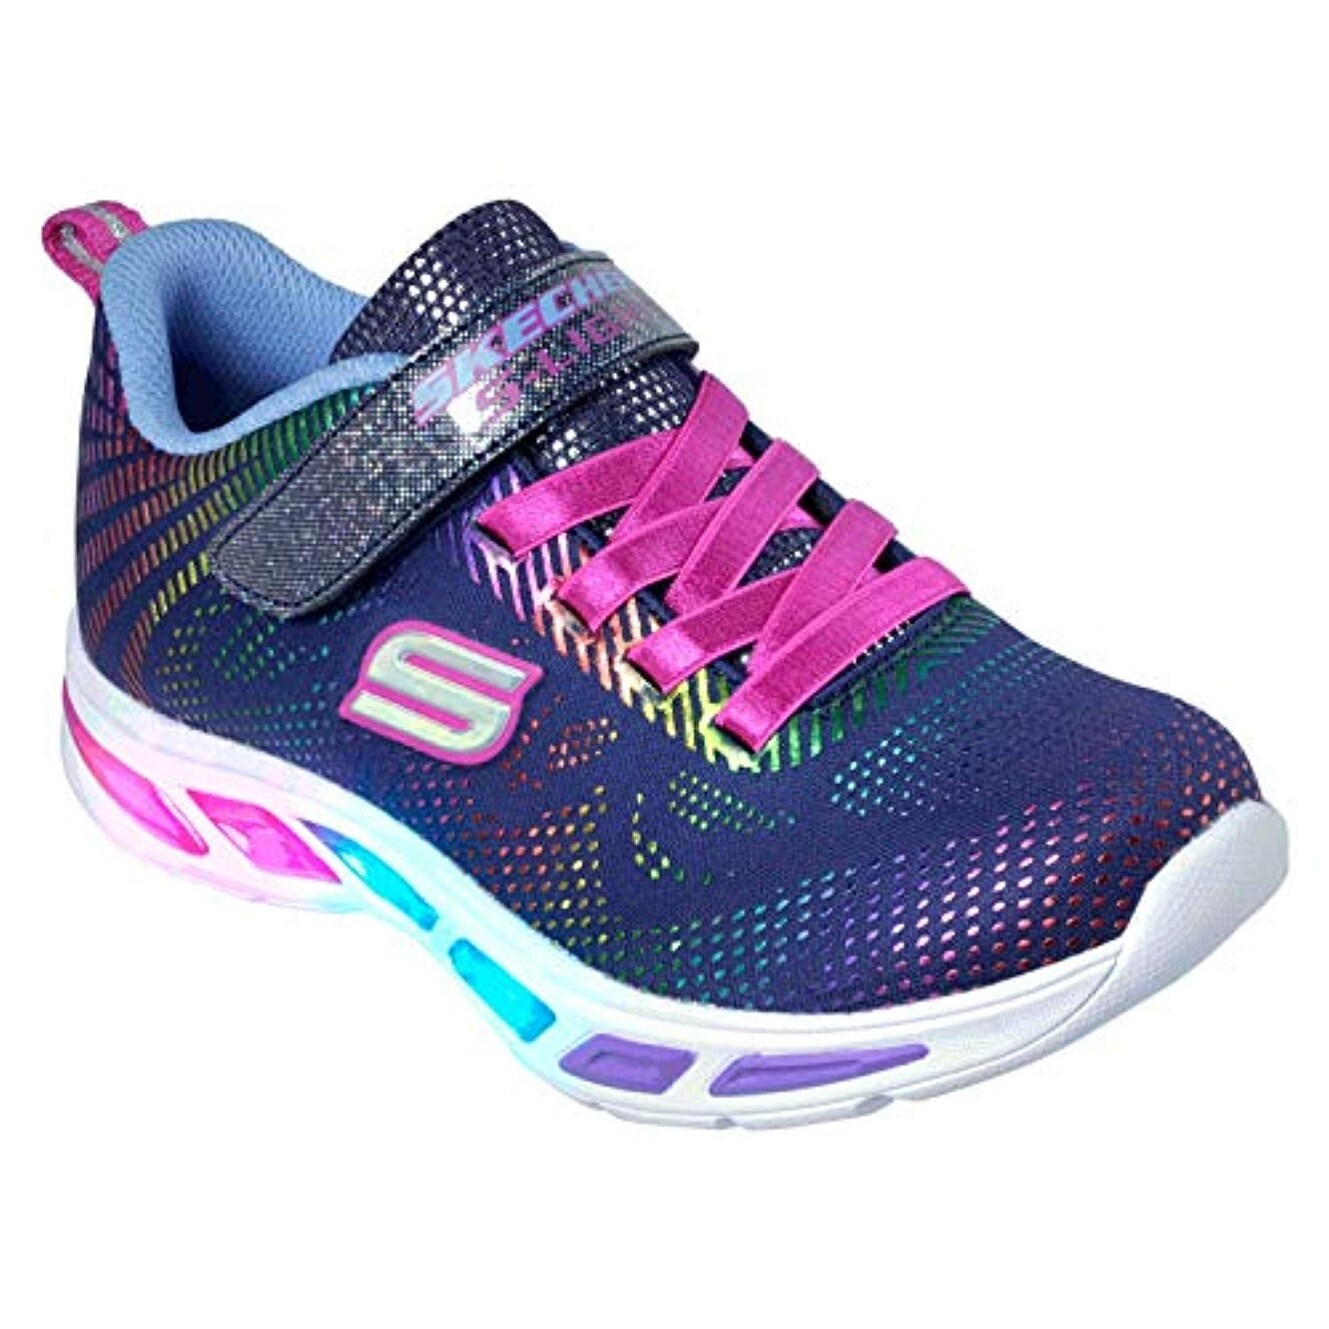 Skechers Kids Girls' Litebeams Gleam N'dream Sneaker, NavyMulti, 11.5 Medium Us Little Kid